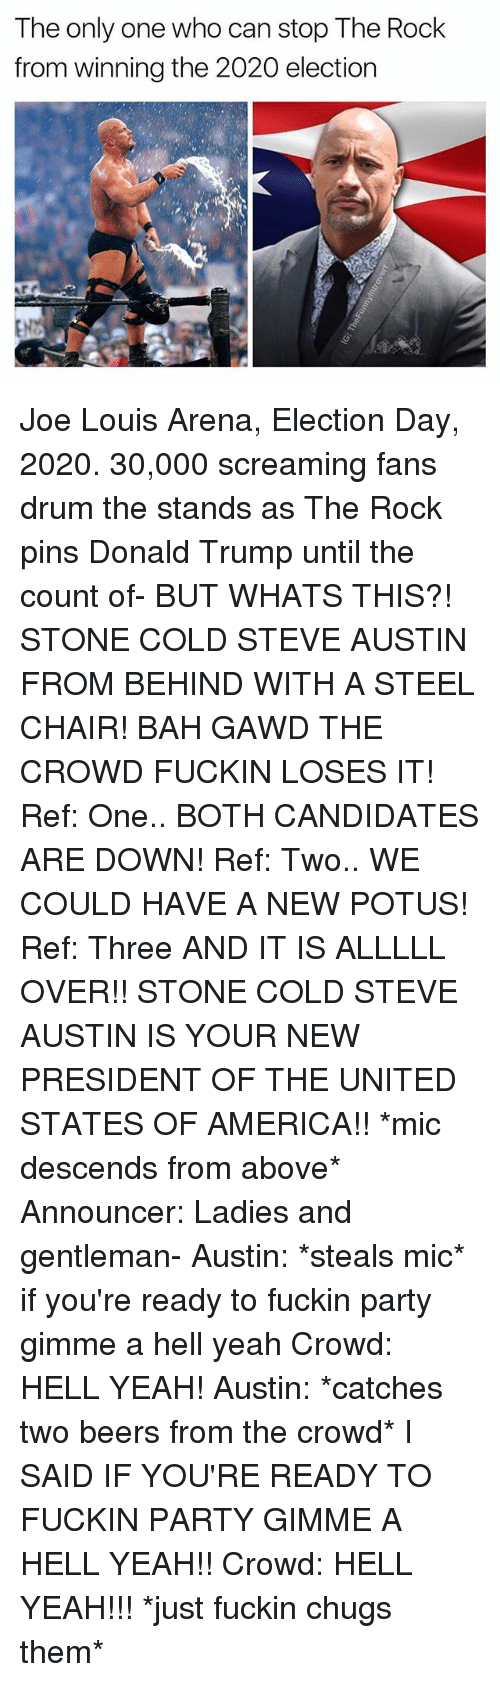 America, Donald Trump, and Party: The only one who can stop The Rock  from winning the 2020 election Joe Louis Arena, Election Day, 2020. 30,000 screaming fans drum the stands as The Rock pins Donald Trump until the count of- BUT WHATS THIS?! STONE COLD STEVE AUSTIN FROM BEHIND WITH A STEEL CHAIR! BAH GAWD THE CROWD FUCKIN LOSES IT! Ref: One.. BOTH CANDIDATES ARE DOWN! Ref: Two.. WE COULD HAVE A NEW POTUS! Ref: Three AND IT IS ALLLLL OVER!! STONE COLD STEVE AUSTIN IS YOUR NEW PRESIDENT OF THE UNITED STATES OF AMERICA!! *mic descends from above* Announcer: Ladies and gentleman- Austin: *steals mic* if you're ready to fuckin party gimme a hell yeah Crowd: HELL YEAH! Austin: *catches two beers from the crowd* I SAID IF YOU'RE READY TO FUCKIN PARTY GIMME A HELL YEAH!! Crowd: HELL YEAH!!! *just fuckin chugs them*